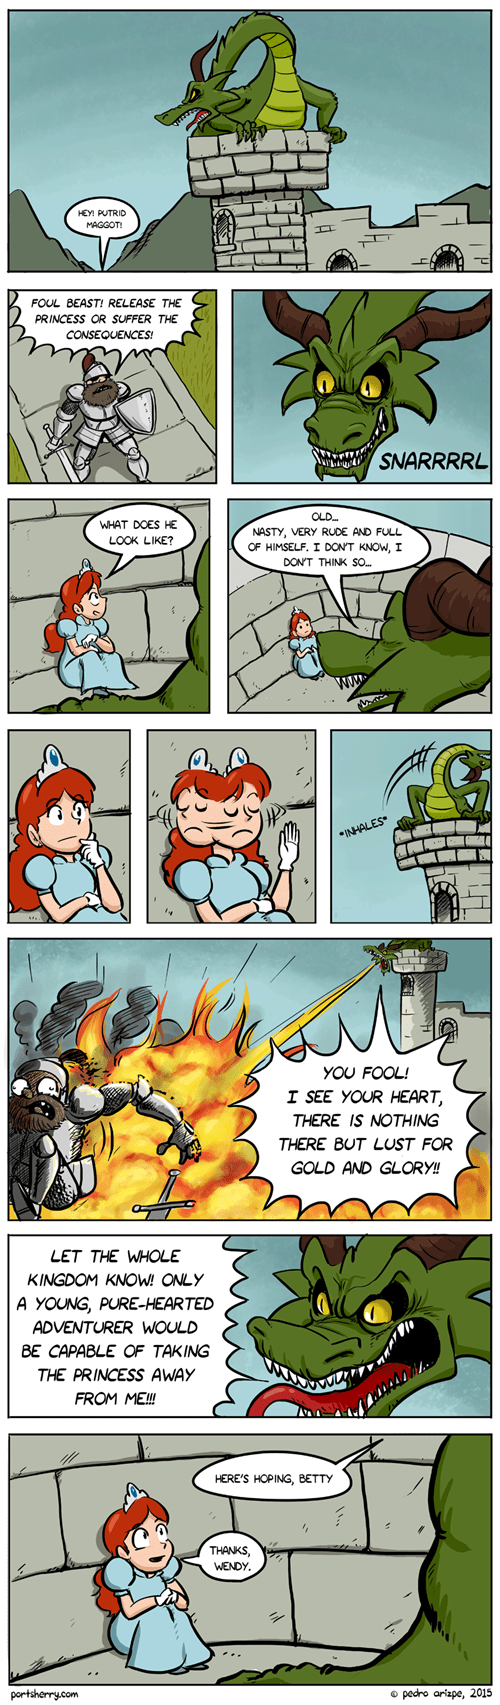 dragon princess fire web comics - 8438695680